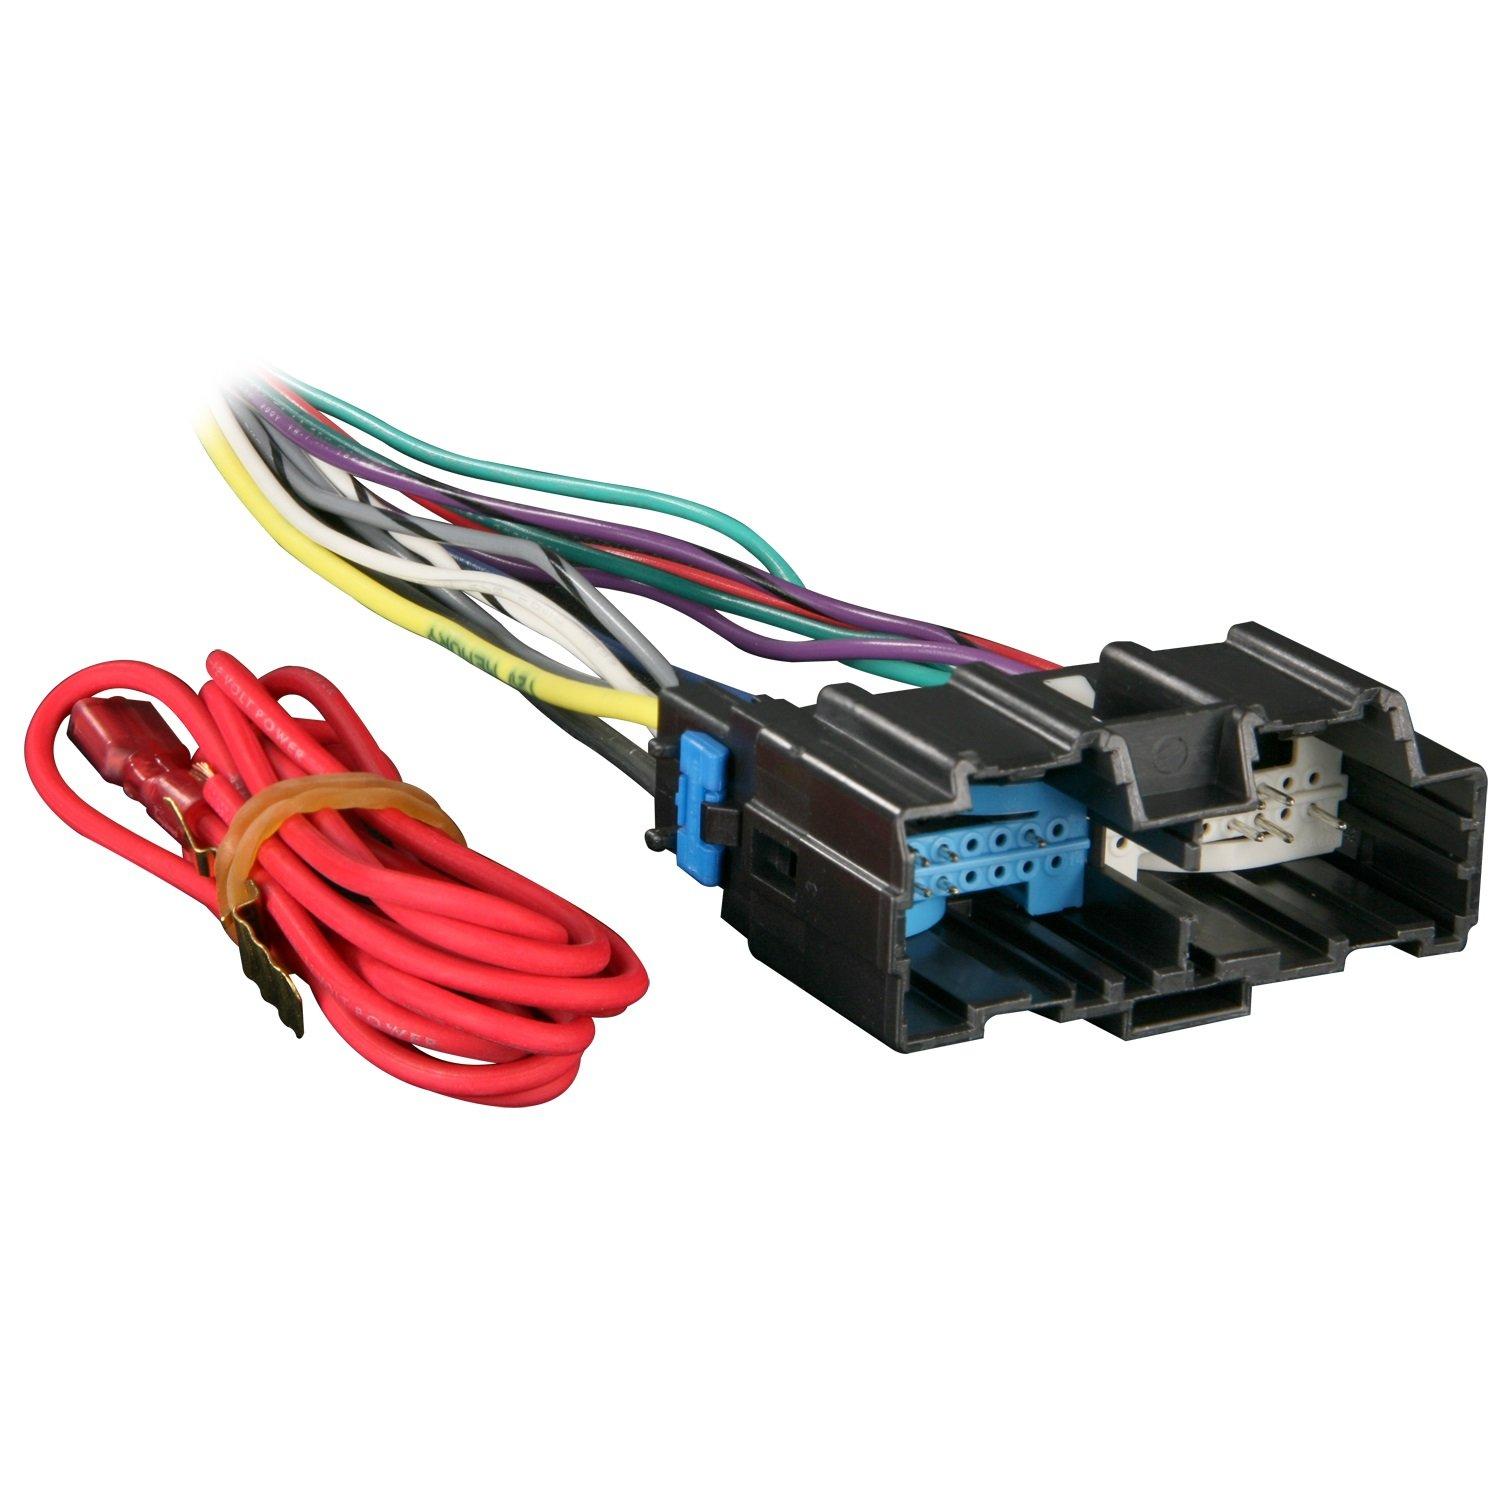 71ZzH dyg7L._SL1500_ amazon com metra 70 2105 radio wiring harness for impala monte wiring harness for 2006 chevy aveo at gsmportal.co